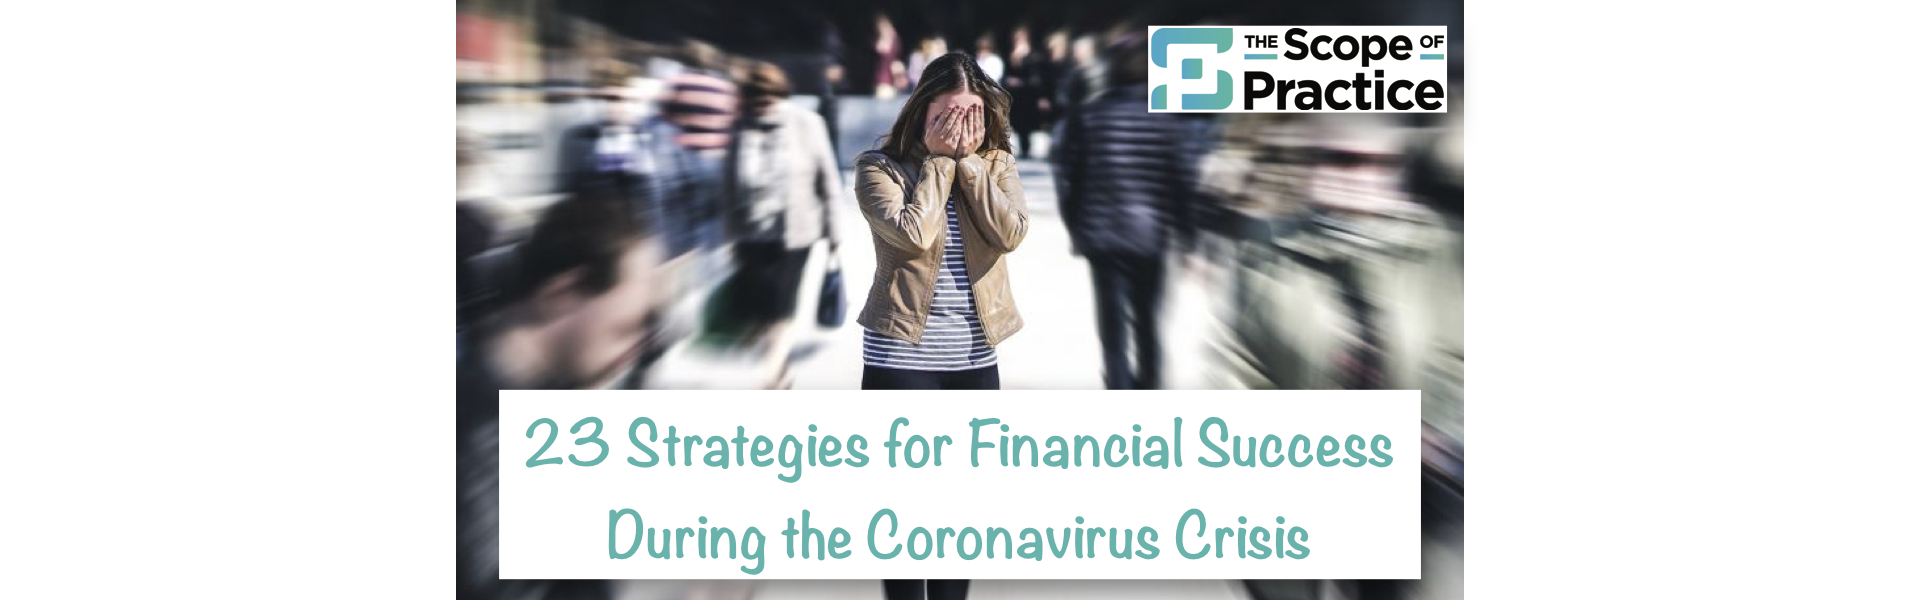 23 strategies for financial success during the coronavirus (COVID-19) crisis